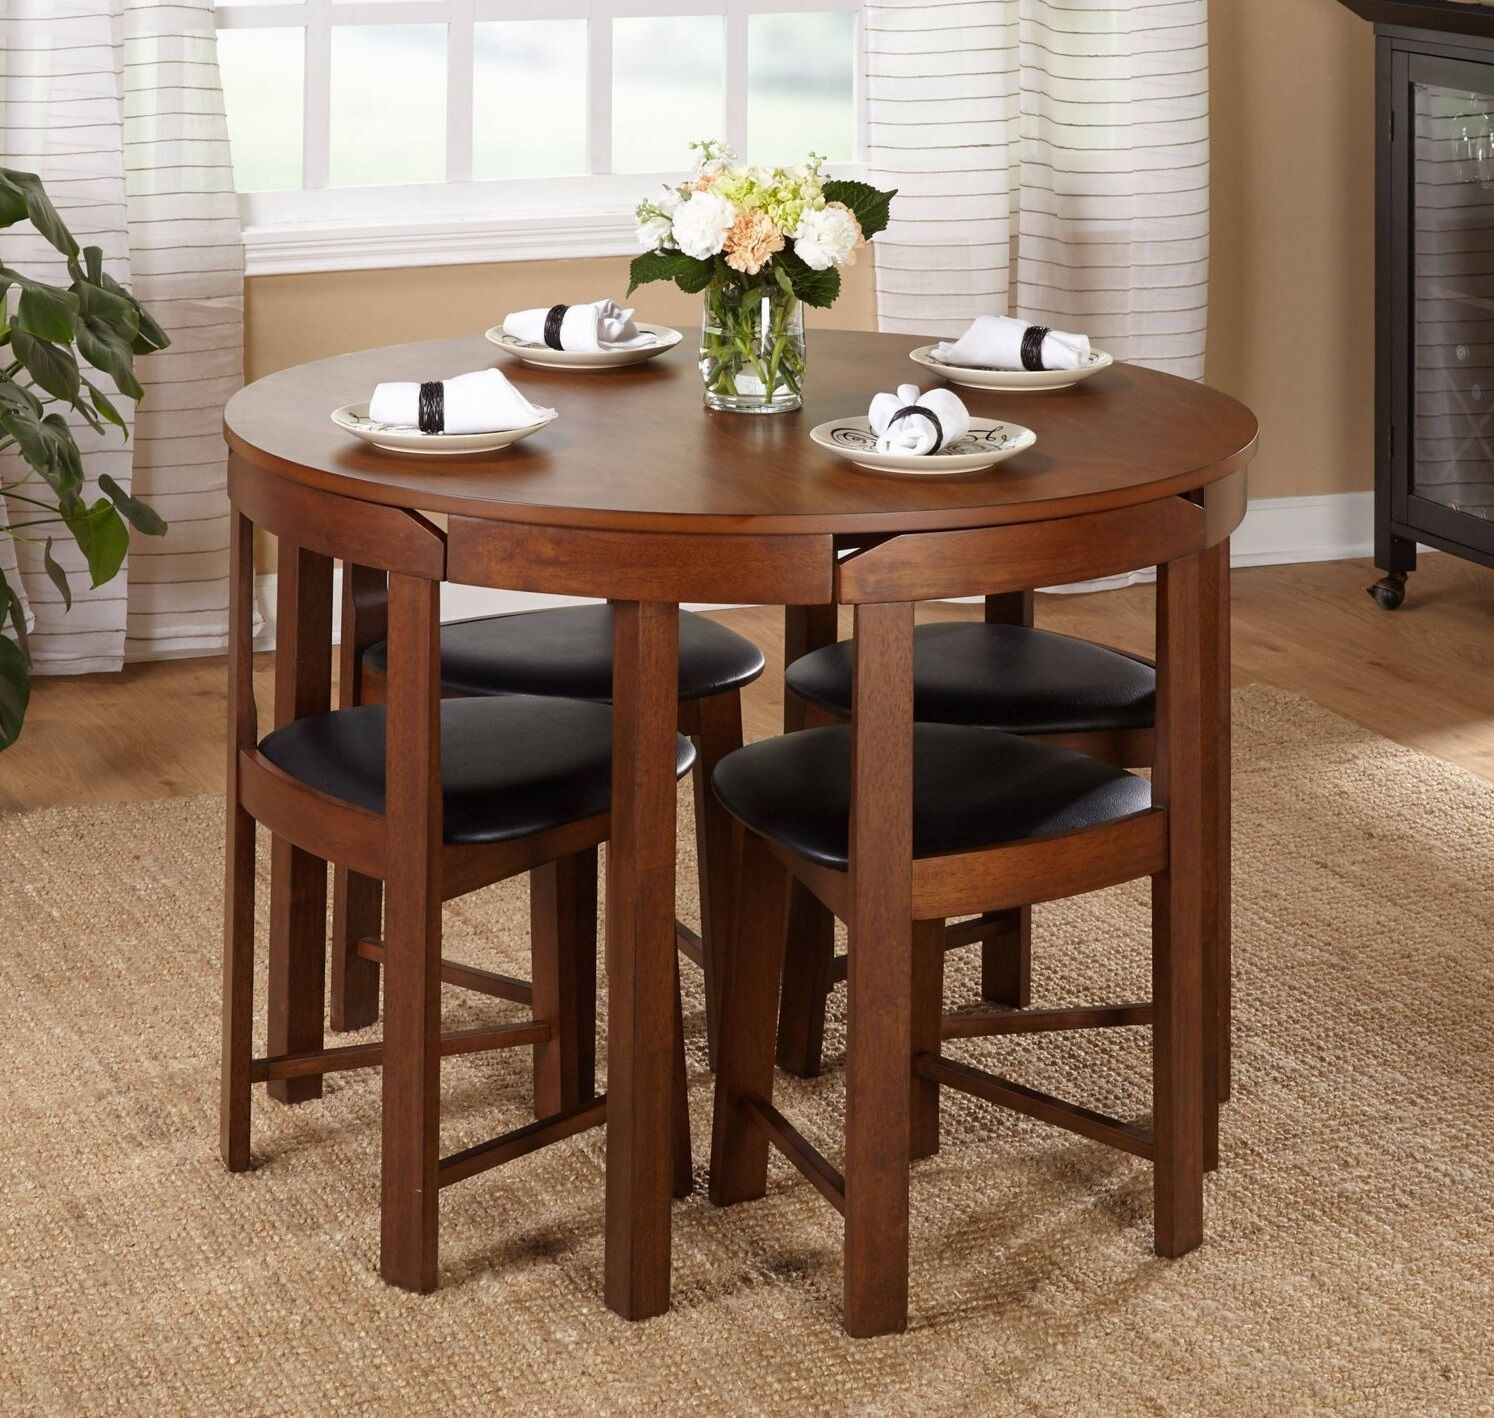 modern 5pc dining table set kitchen dinette chairs breakfast bar nook patio new ebay. Black Bedroom Furniture Sets. Home Design Ideas